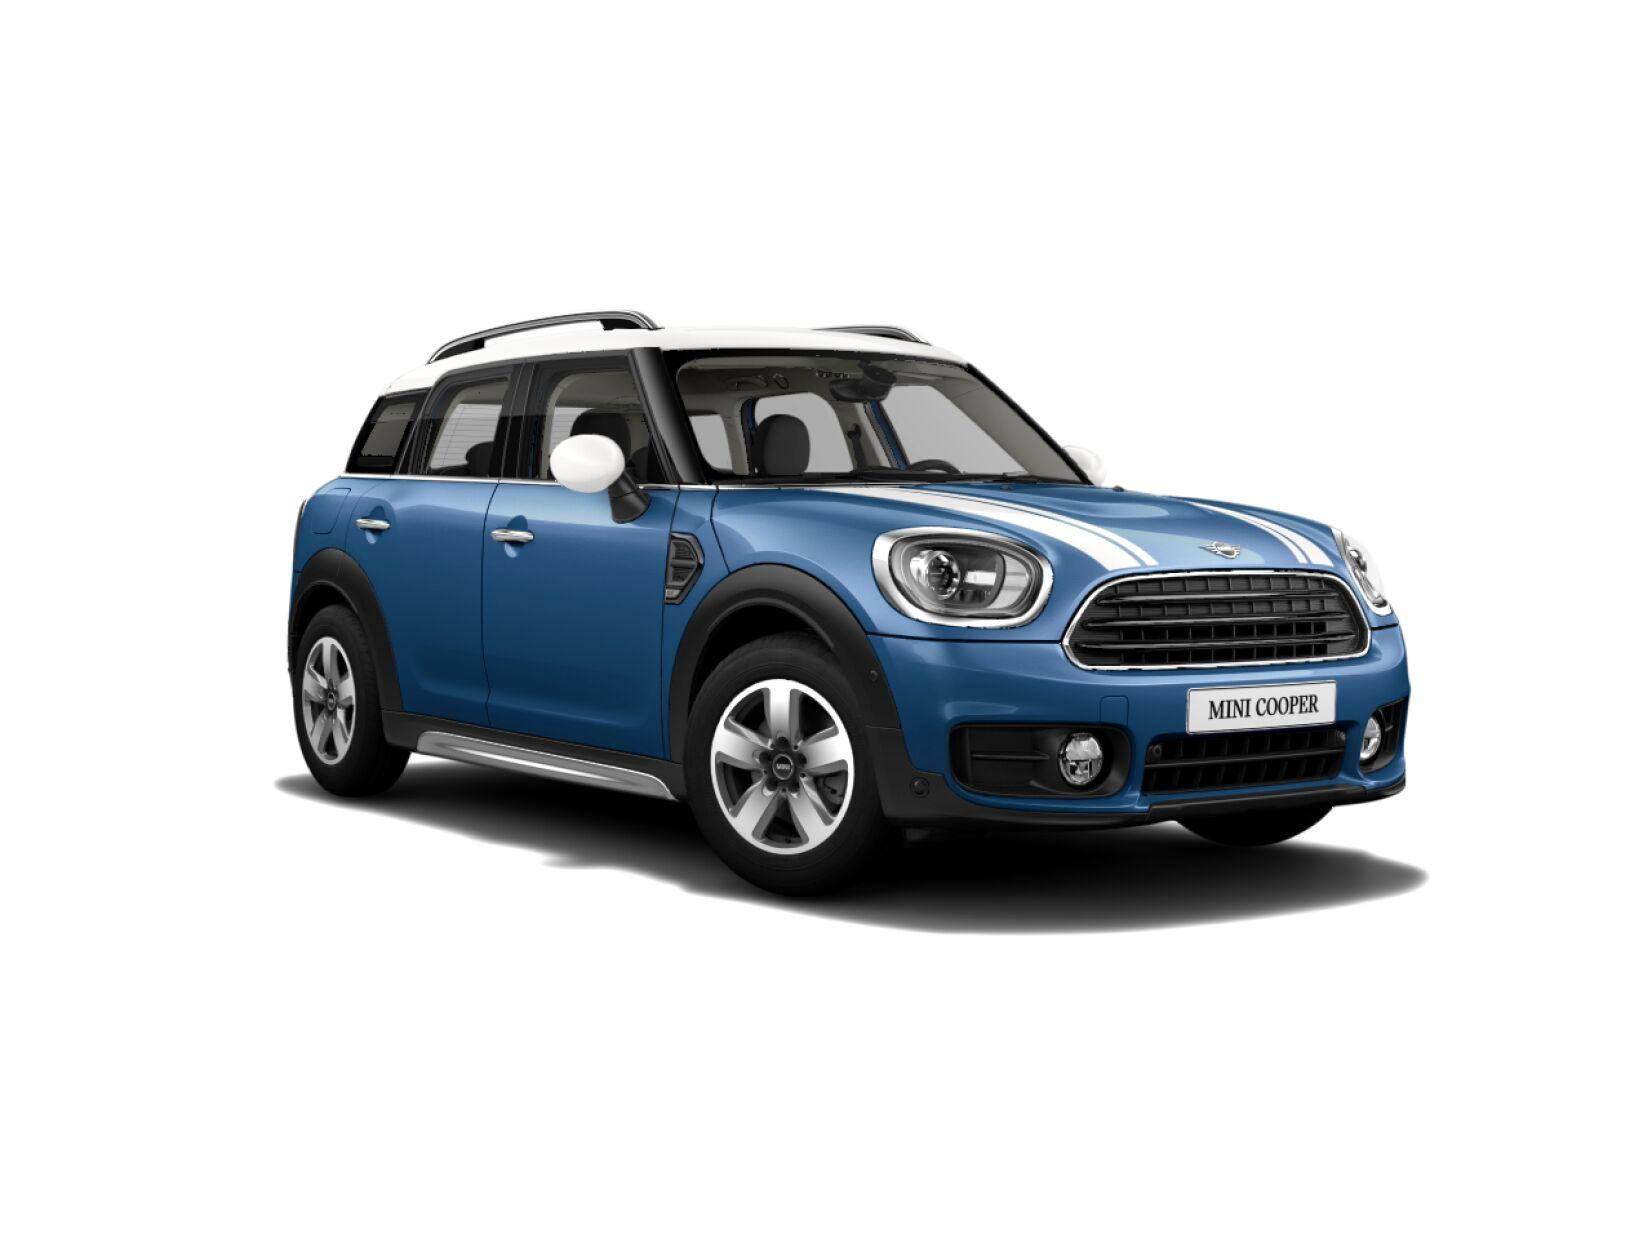 MINI Cooper Countryman [6167303]